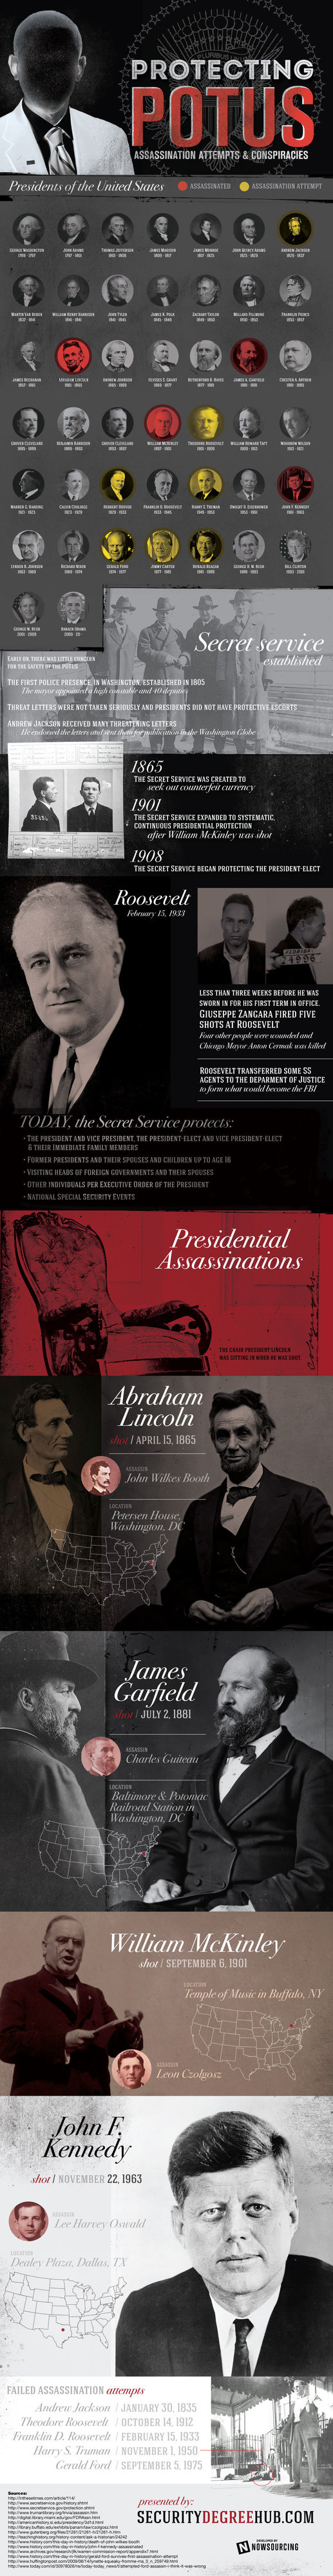 Protecting the President of the US: Assassinations, Attempts and Conspiracies #secret #president #service #potus #assassination